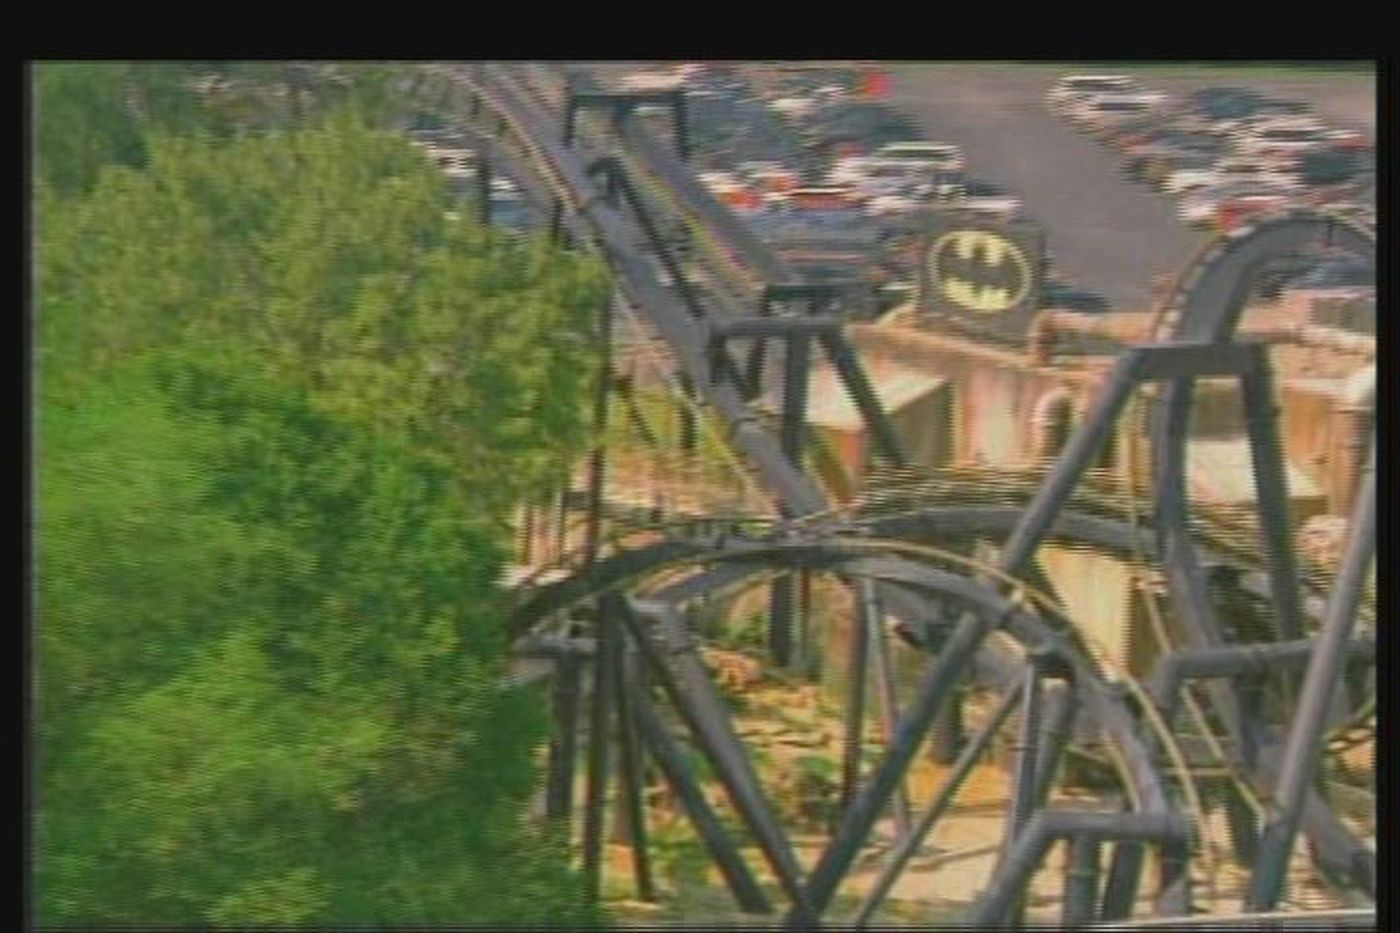 Teen Decapitated at Six Flags over Georgia